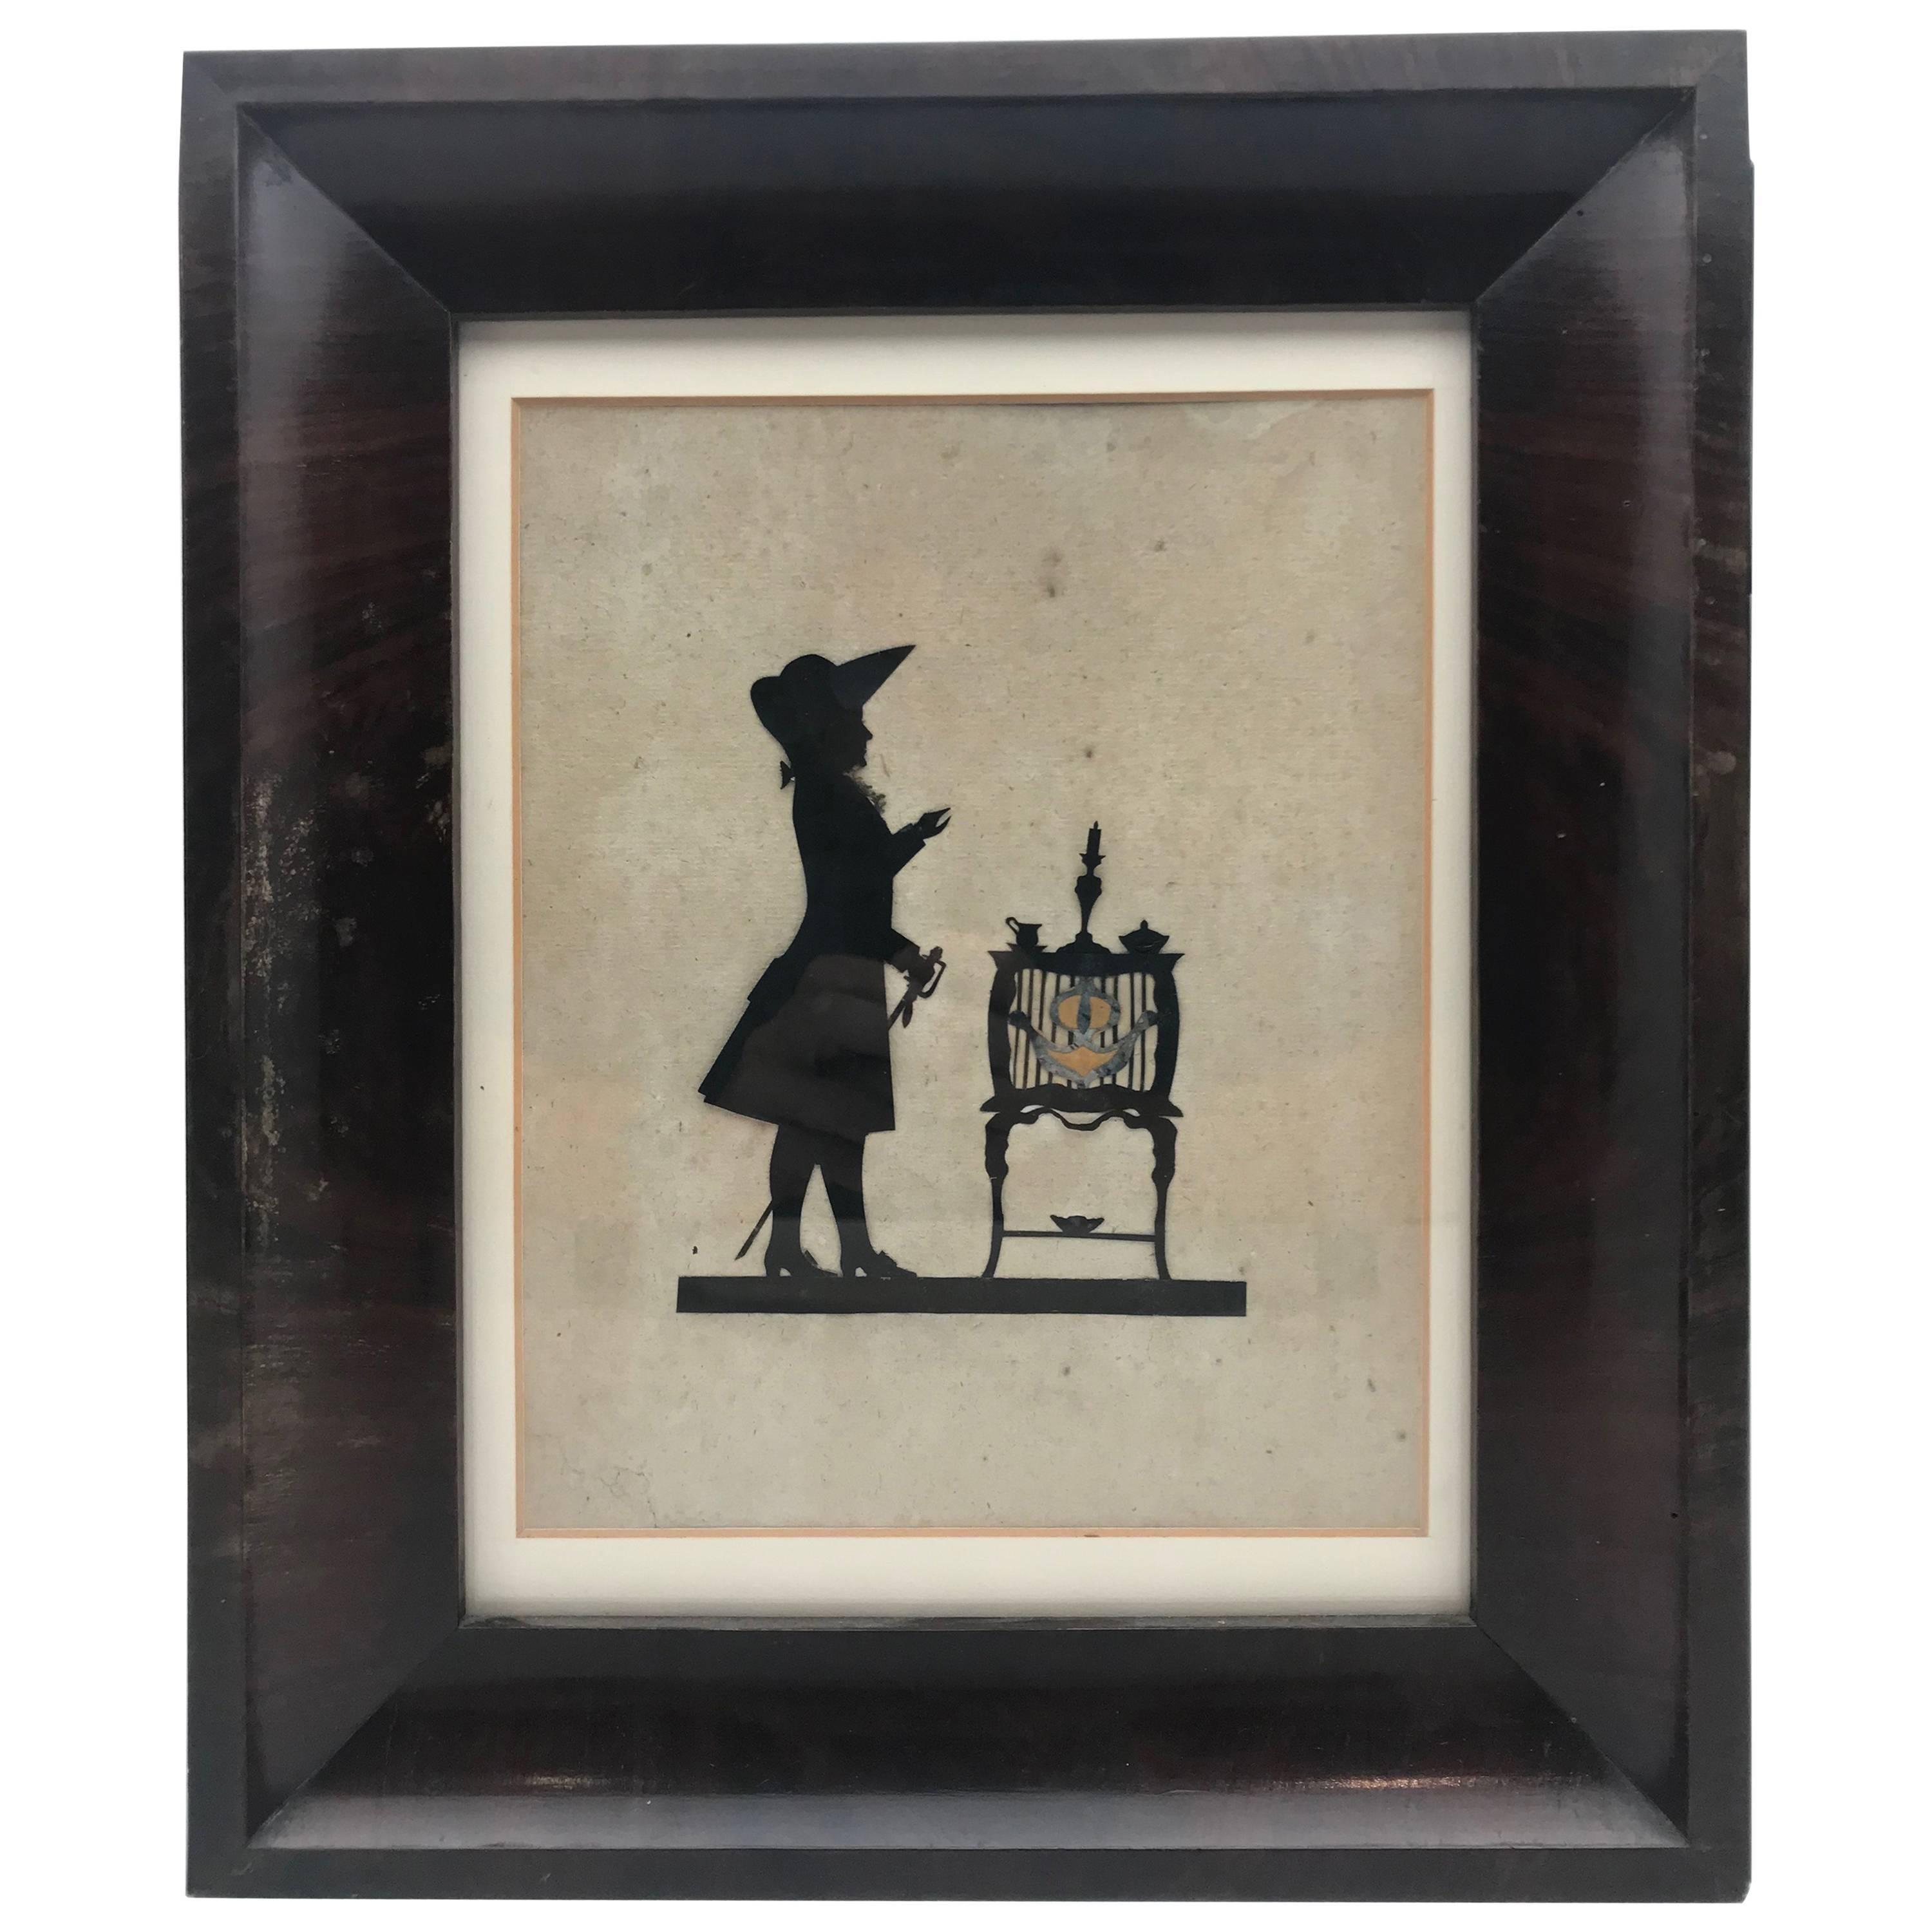 19th Century Paper Cut Silhouette of Gentleman in Front of a Table